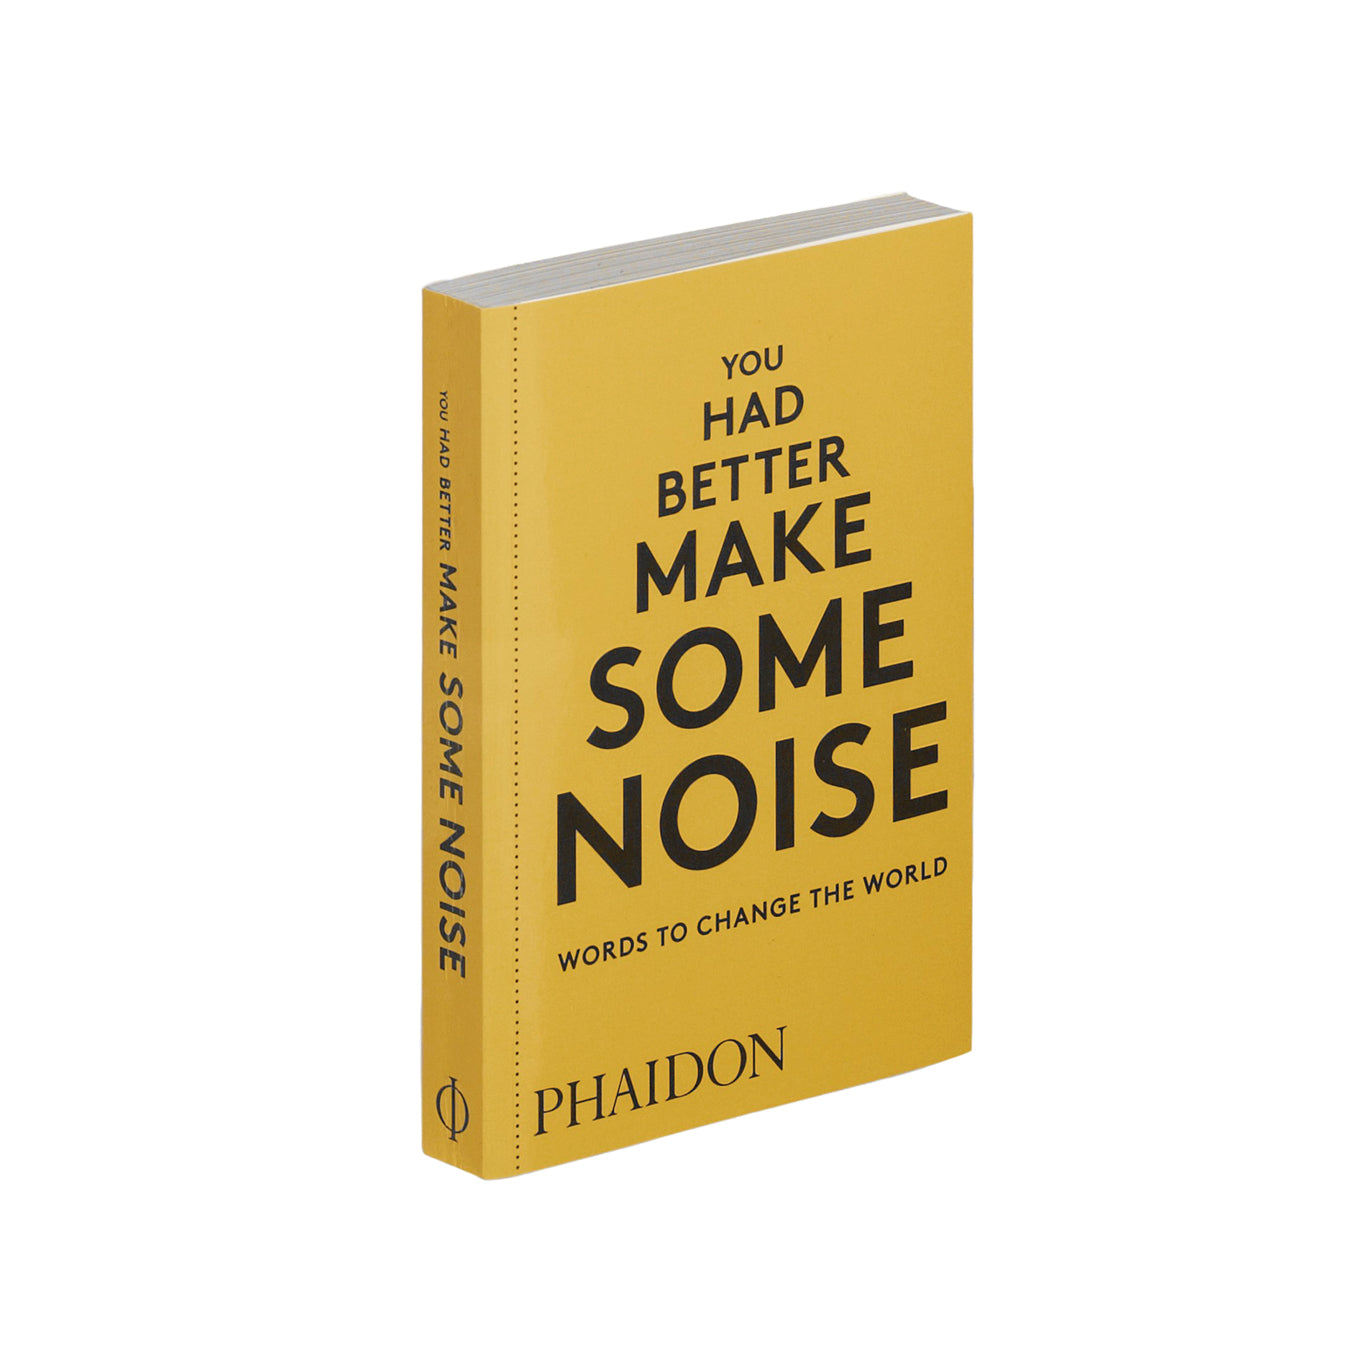 You Had Better Make Some Noise: Words to Change the World by Phaidon